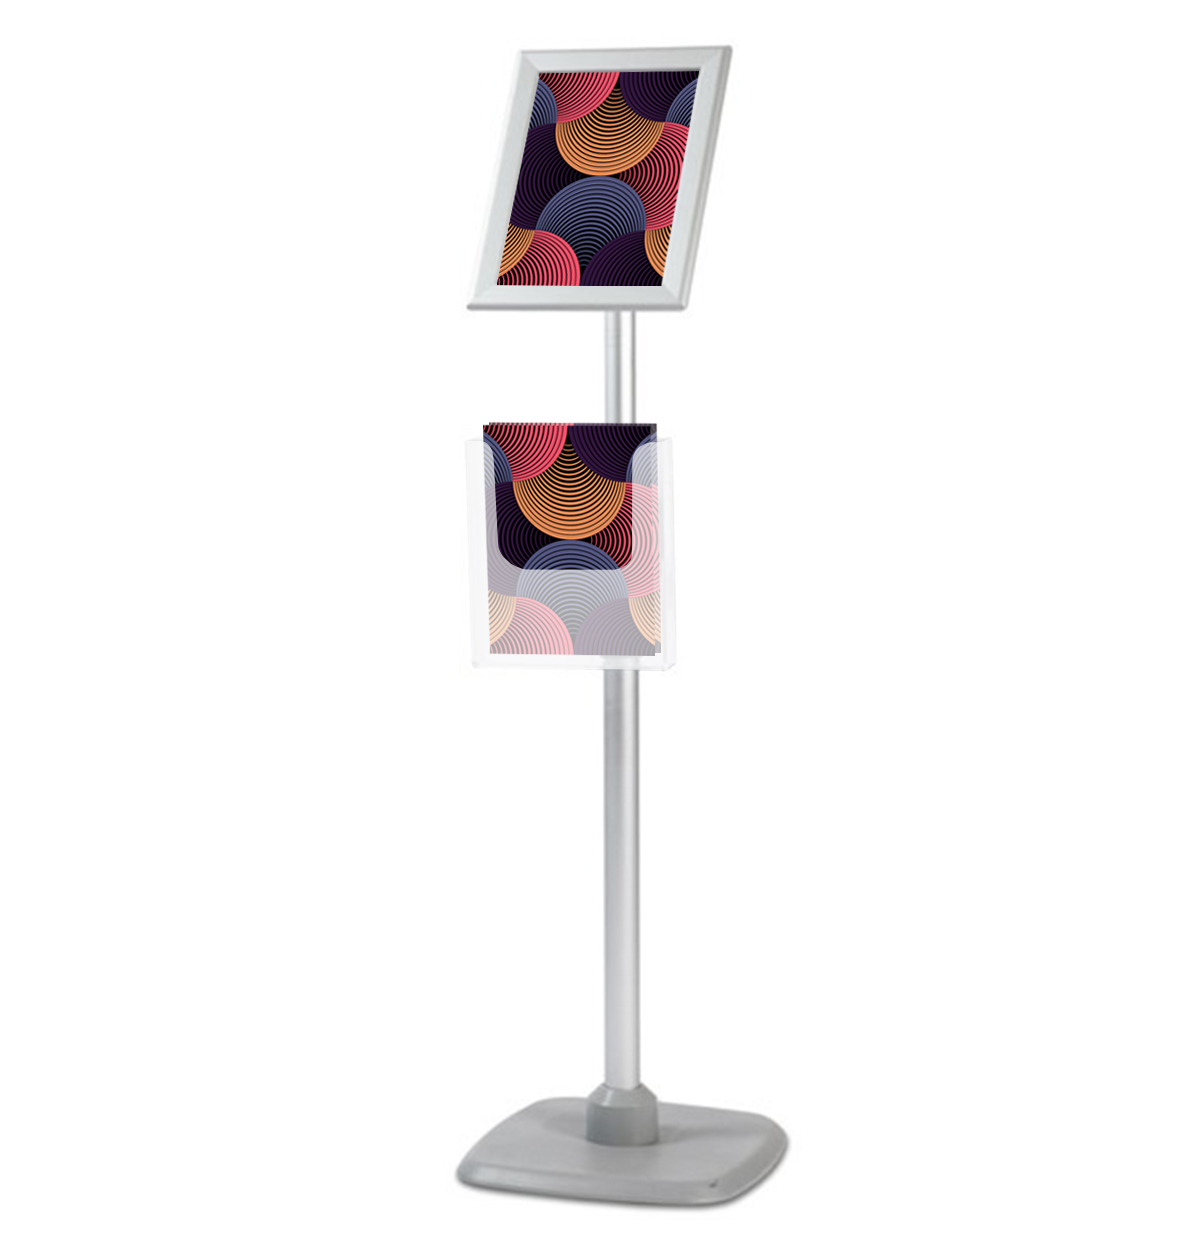 exhibition stand design, exhibition stand literature, exhibition stand digital display stand